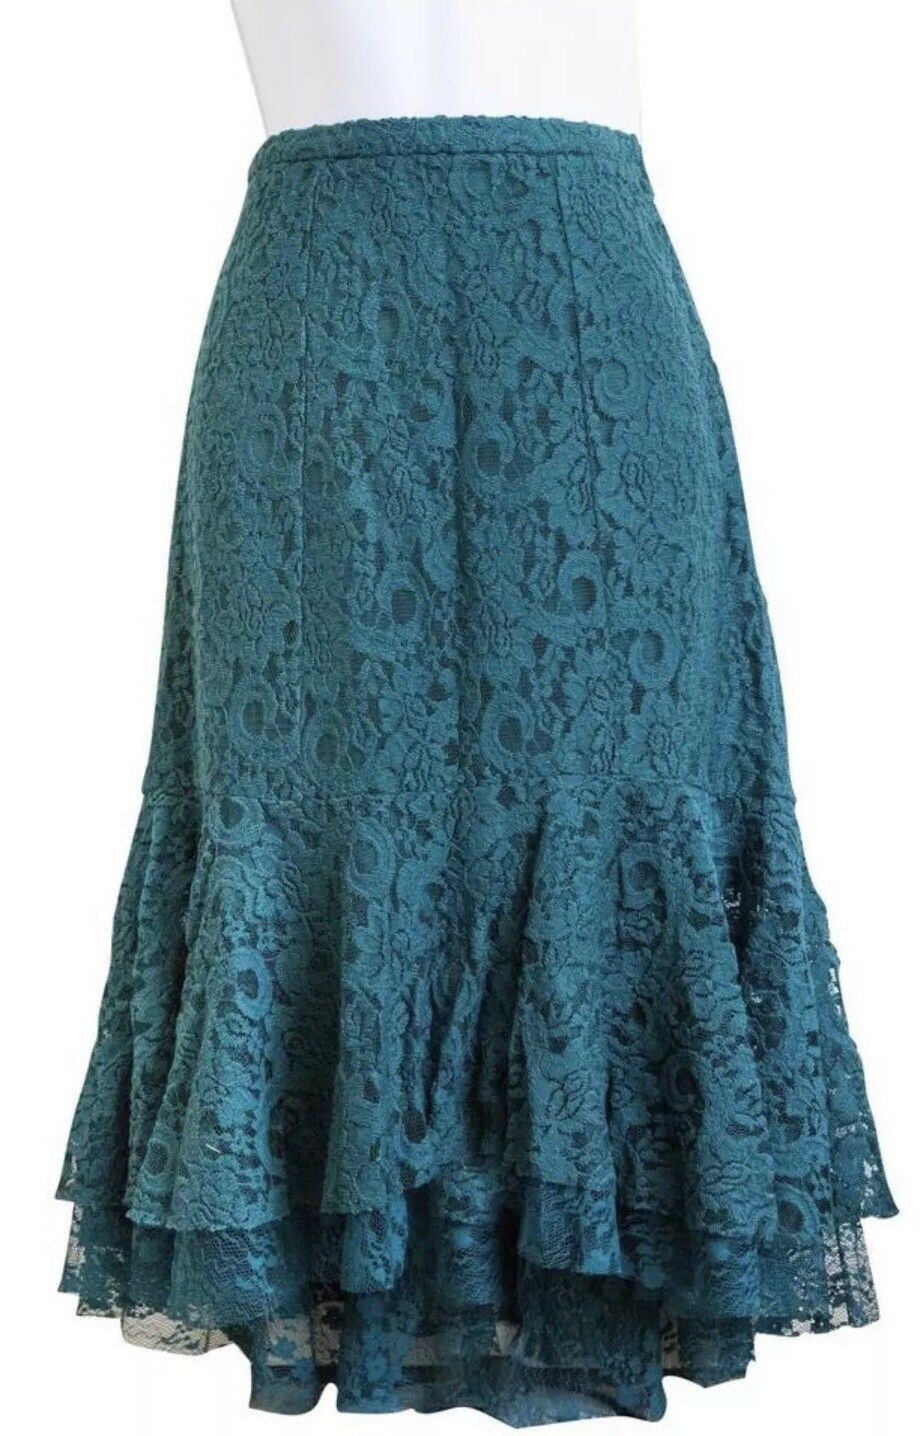 NEW Anthropologie Ruffled Lace Skirt Size 8 Green